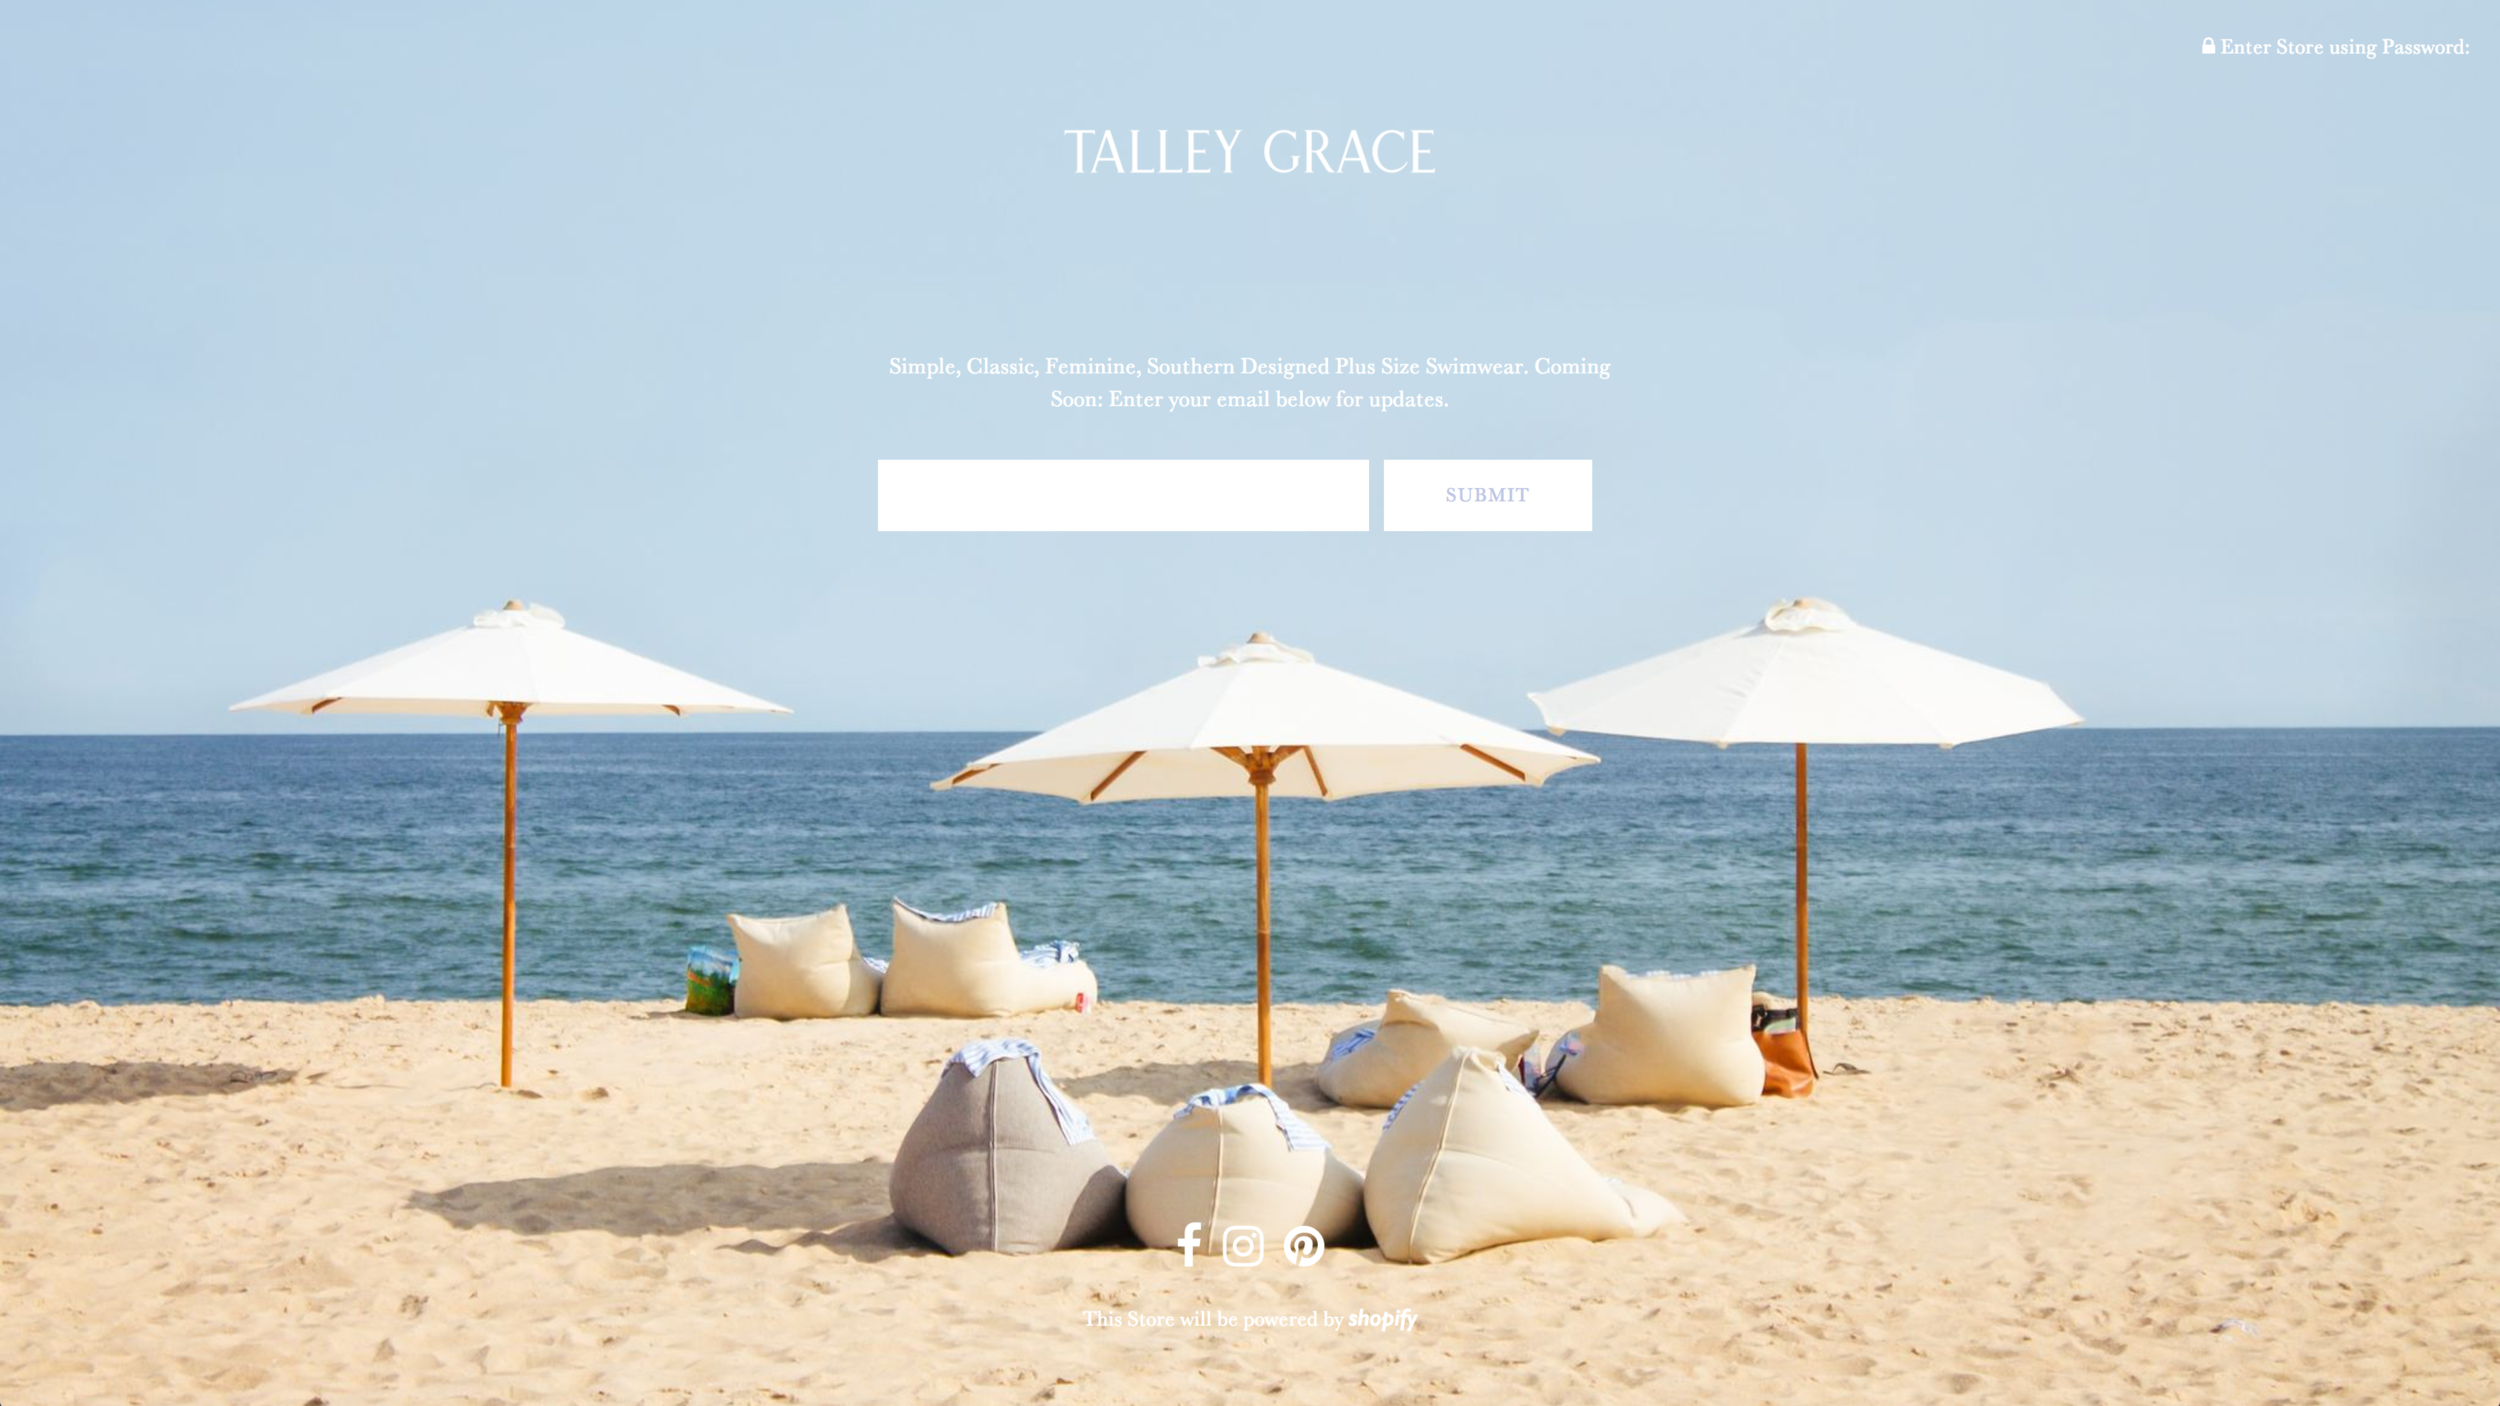 """Hi, I'm Morgan,you're probably wondering what in the world this """"Talley Grace"""" thing is you keep hearing about (the blog is still here, scroll down for some old posts)!  Talley Grace  is my feminine, classic, southern designed plus size swimwear collection coming March 2019. It's my biggest and longest held dream, and it's named after my two little girls. I've been working my tail off and putting it all on the line to make it happen, and I can't wait to share it with everyone. I hope you will join me on the journey and be just as excited as me to see the end result! You can follow along on my  Instagram , which is basically where the blog has gone, it's just my life (fashion & family)and some behind the scenes of the design process in little squares. Join me over there  @talleygraceswim , and click the picture above to go to  the site  and sign up to be the first to know about sneak peeks, presales, launch dates, and giveaways!"""